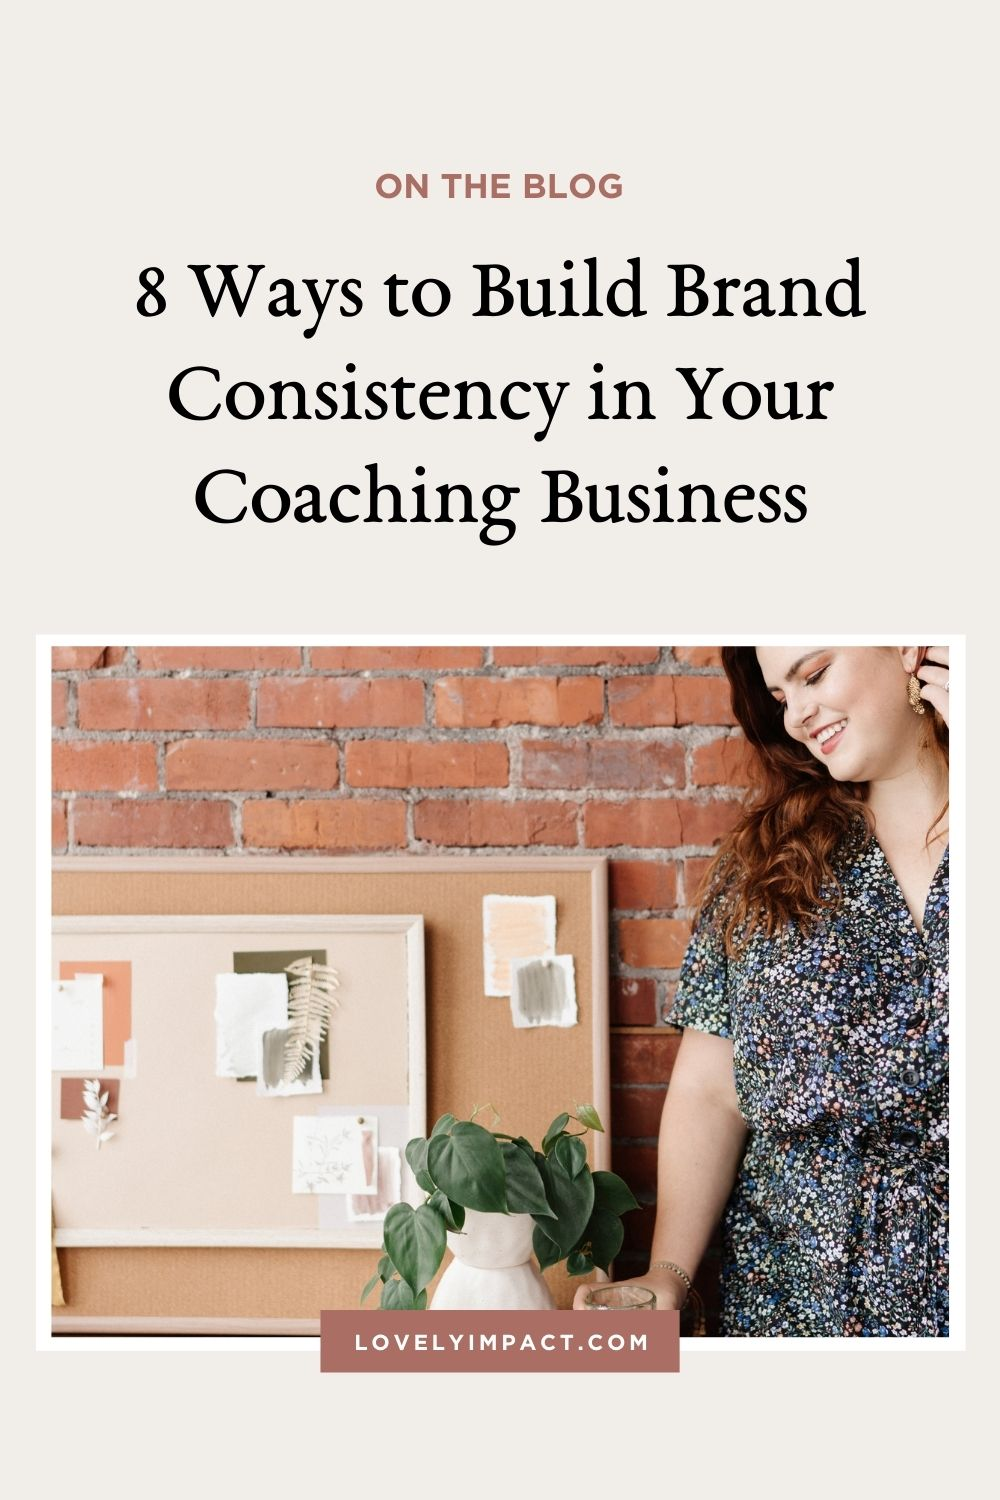 8 Ways to Build Brand Consistency in Your Coaching Business